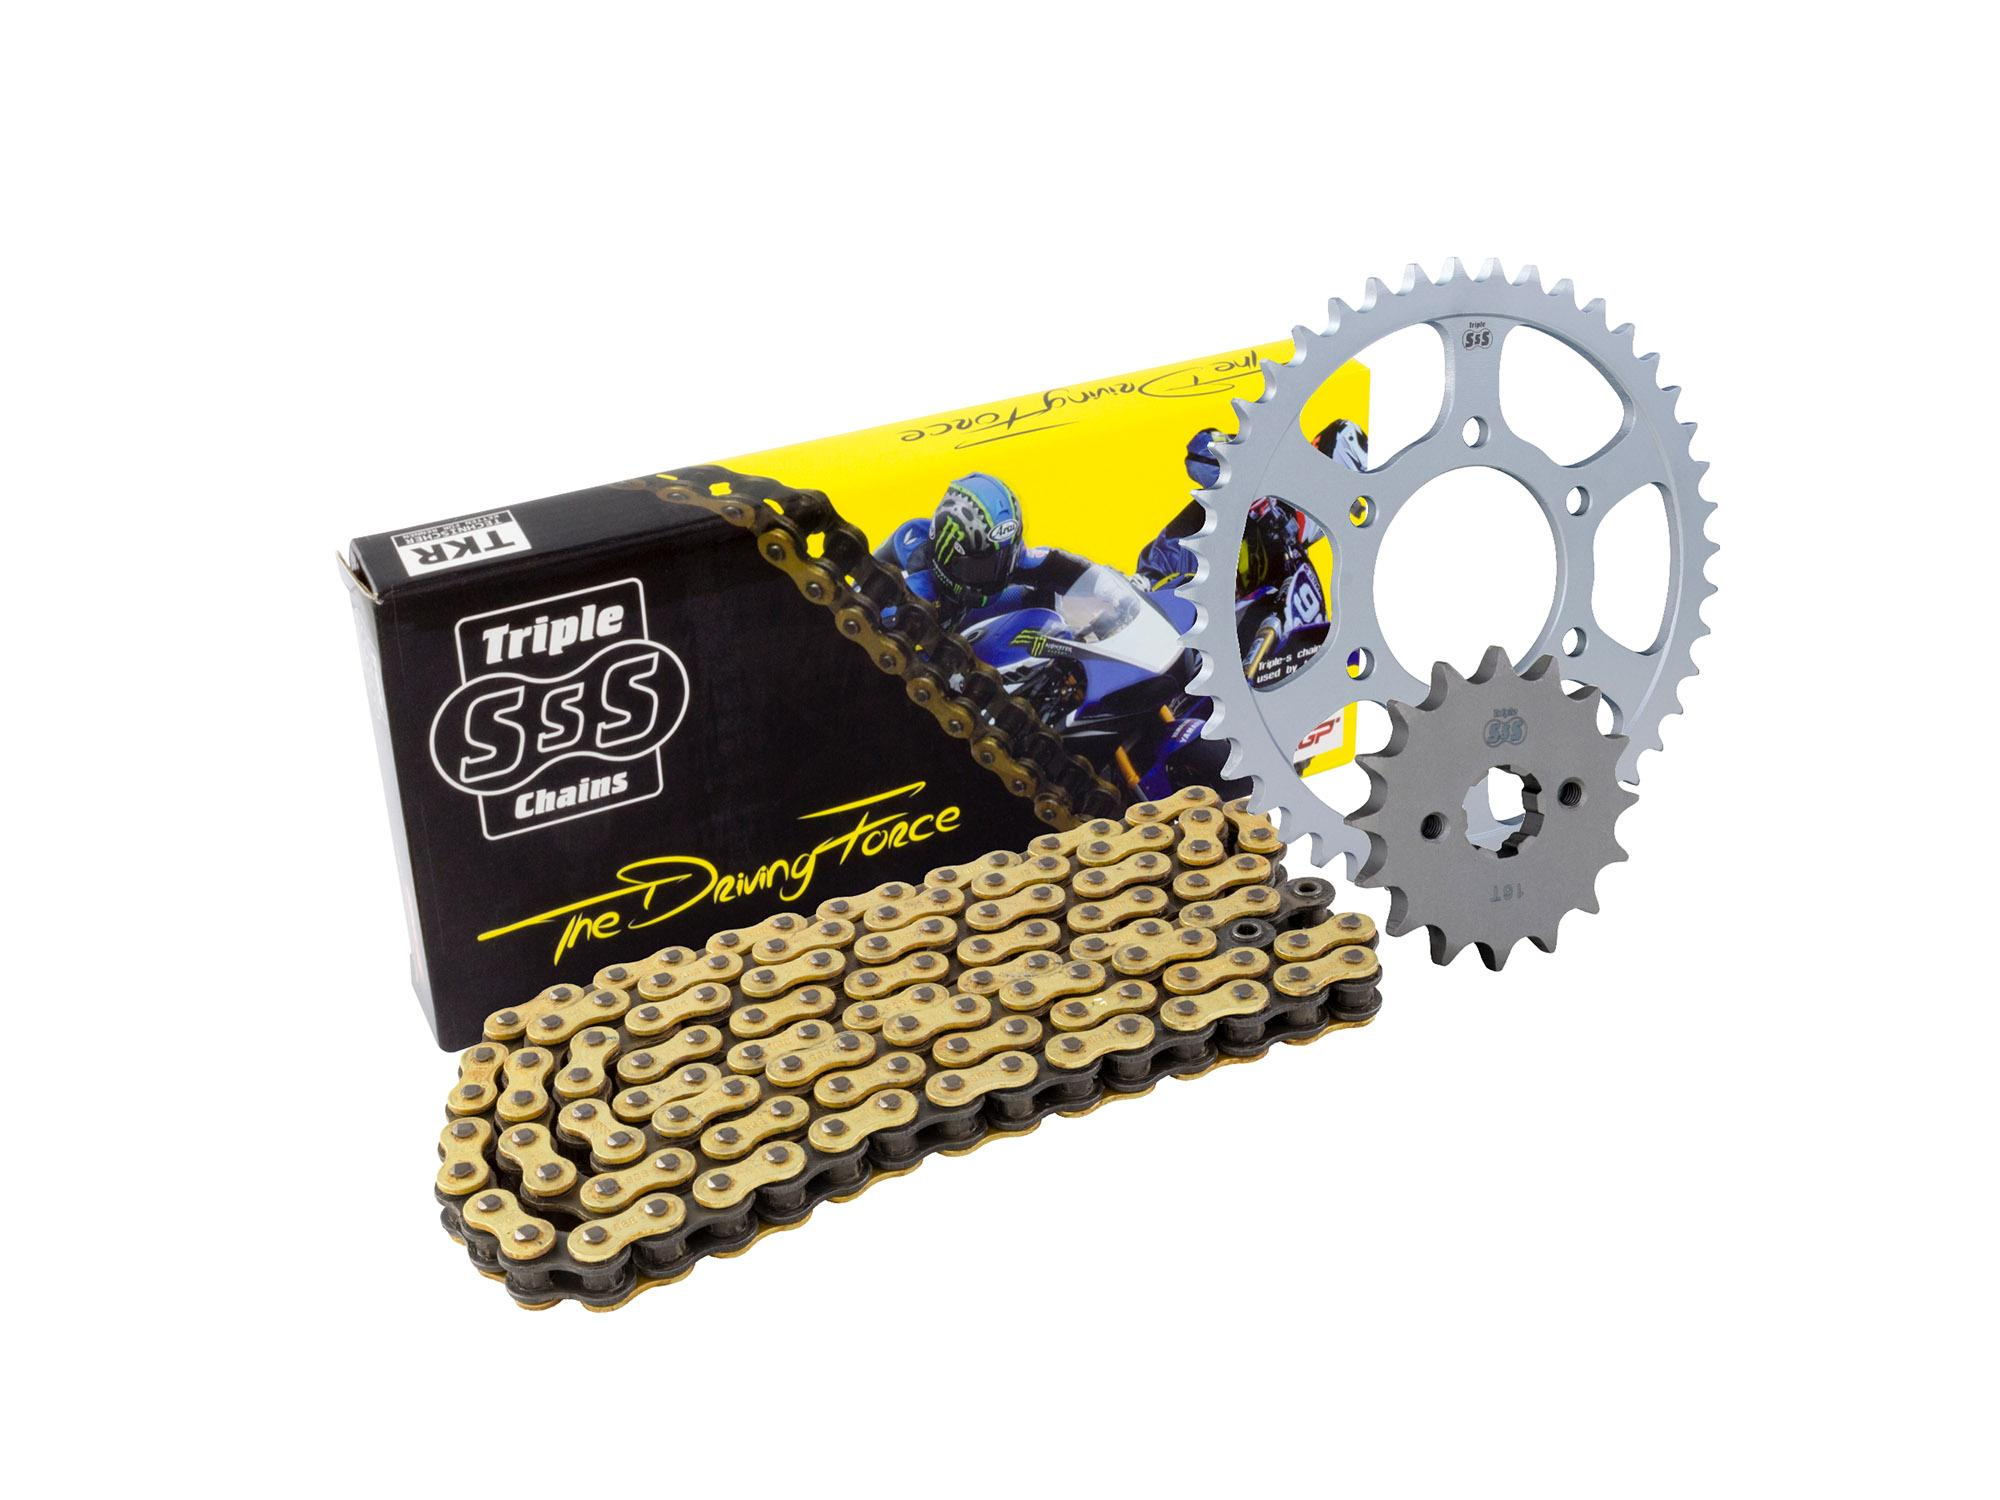 Ducati 749 S 04-06 Chain & Sprocket Kit: 14T Front, 38T Rear, HD O-Ring Gold Chain 525H 96Link